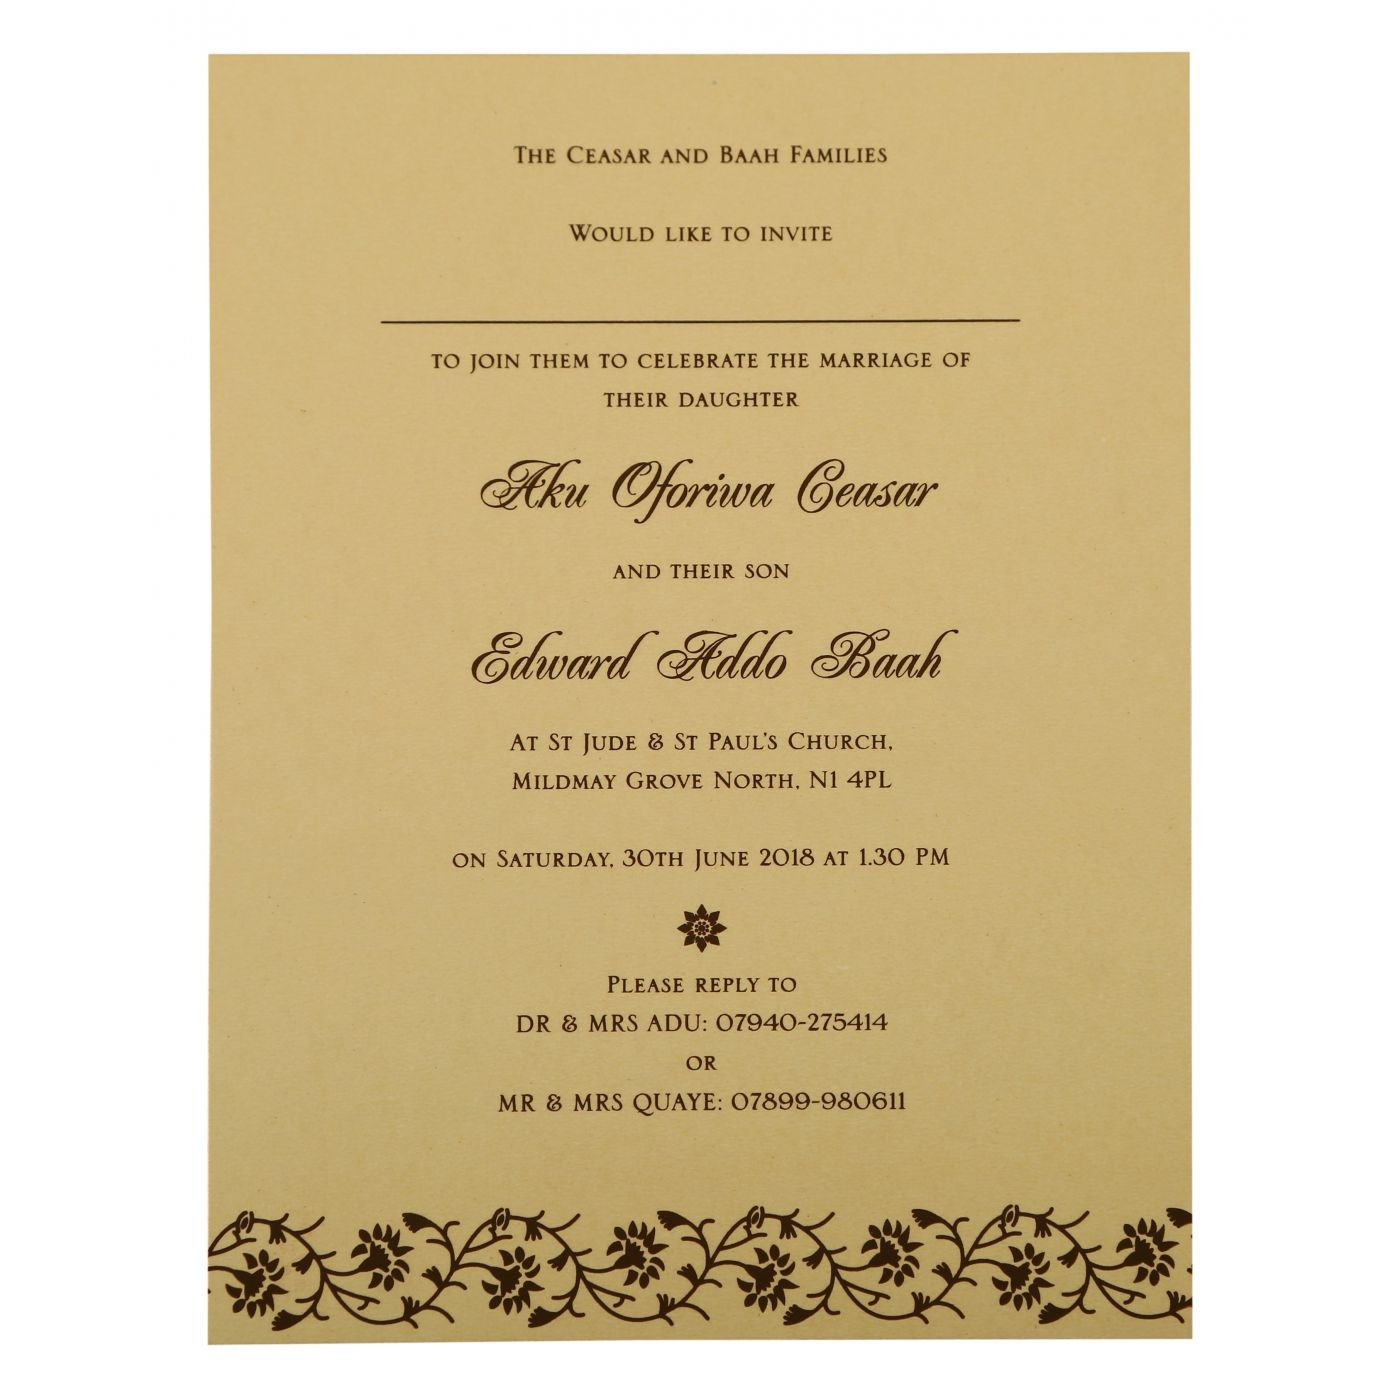 IVORY SHIMMERY FLORAL THEMED - SCREEN PRINTED WEDDING INVITATION : CW-822B - IndianWeddingCards